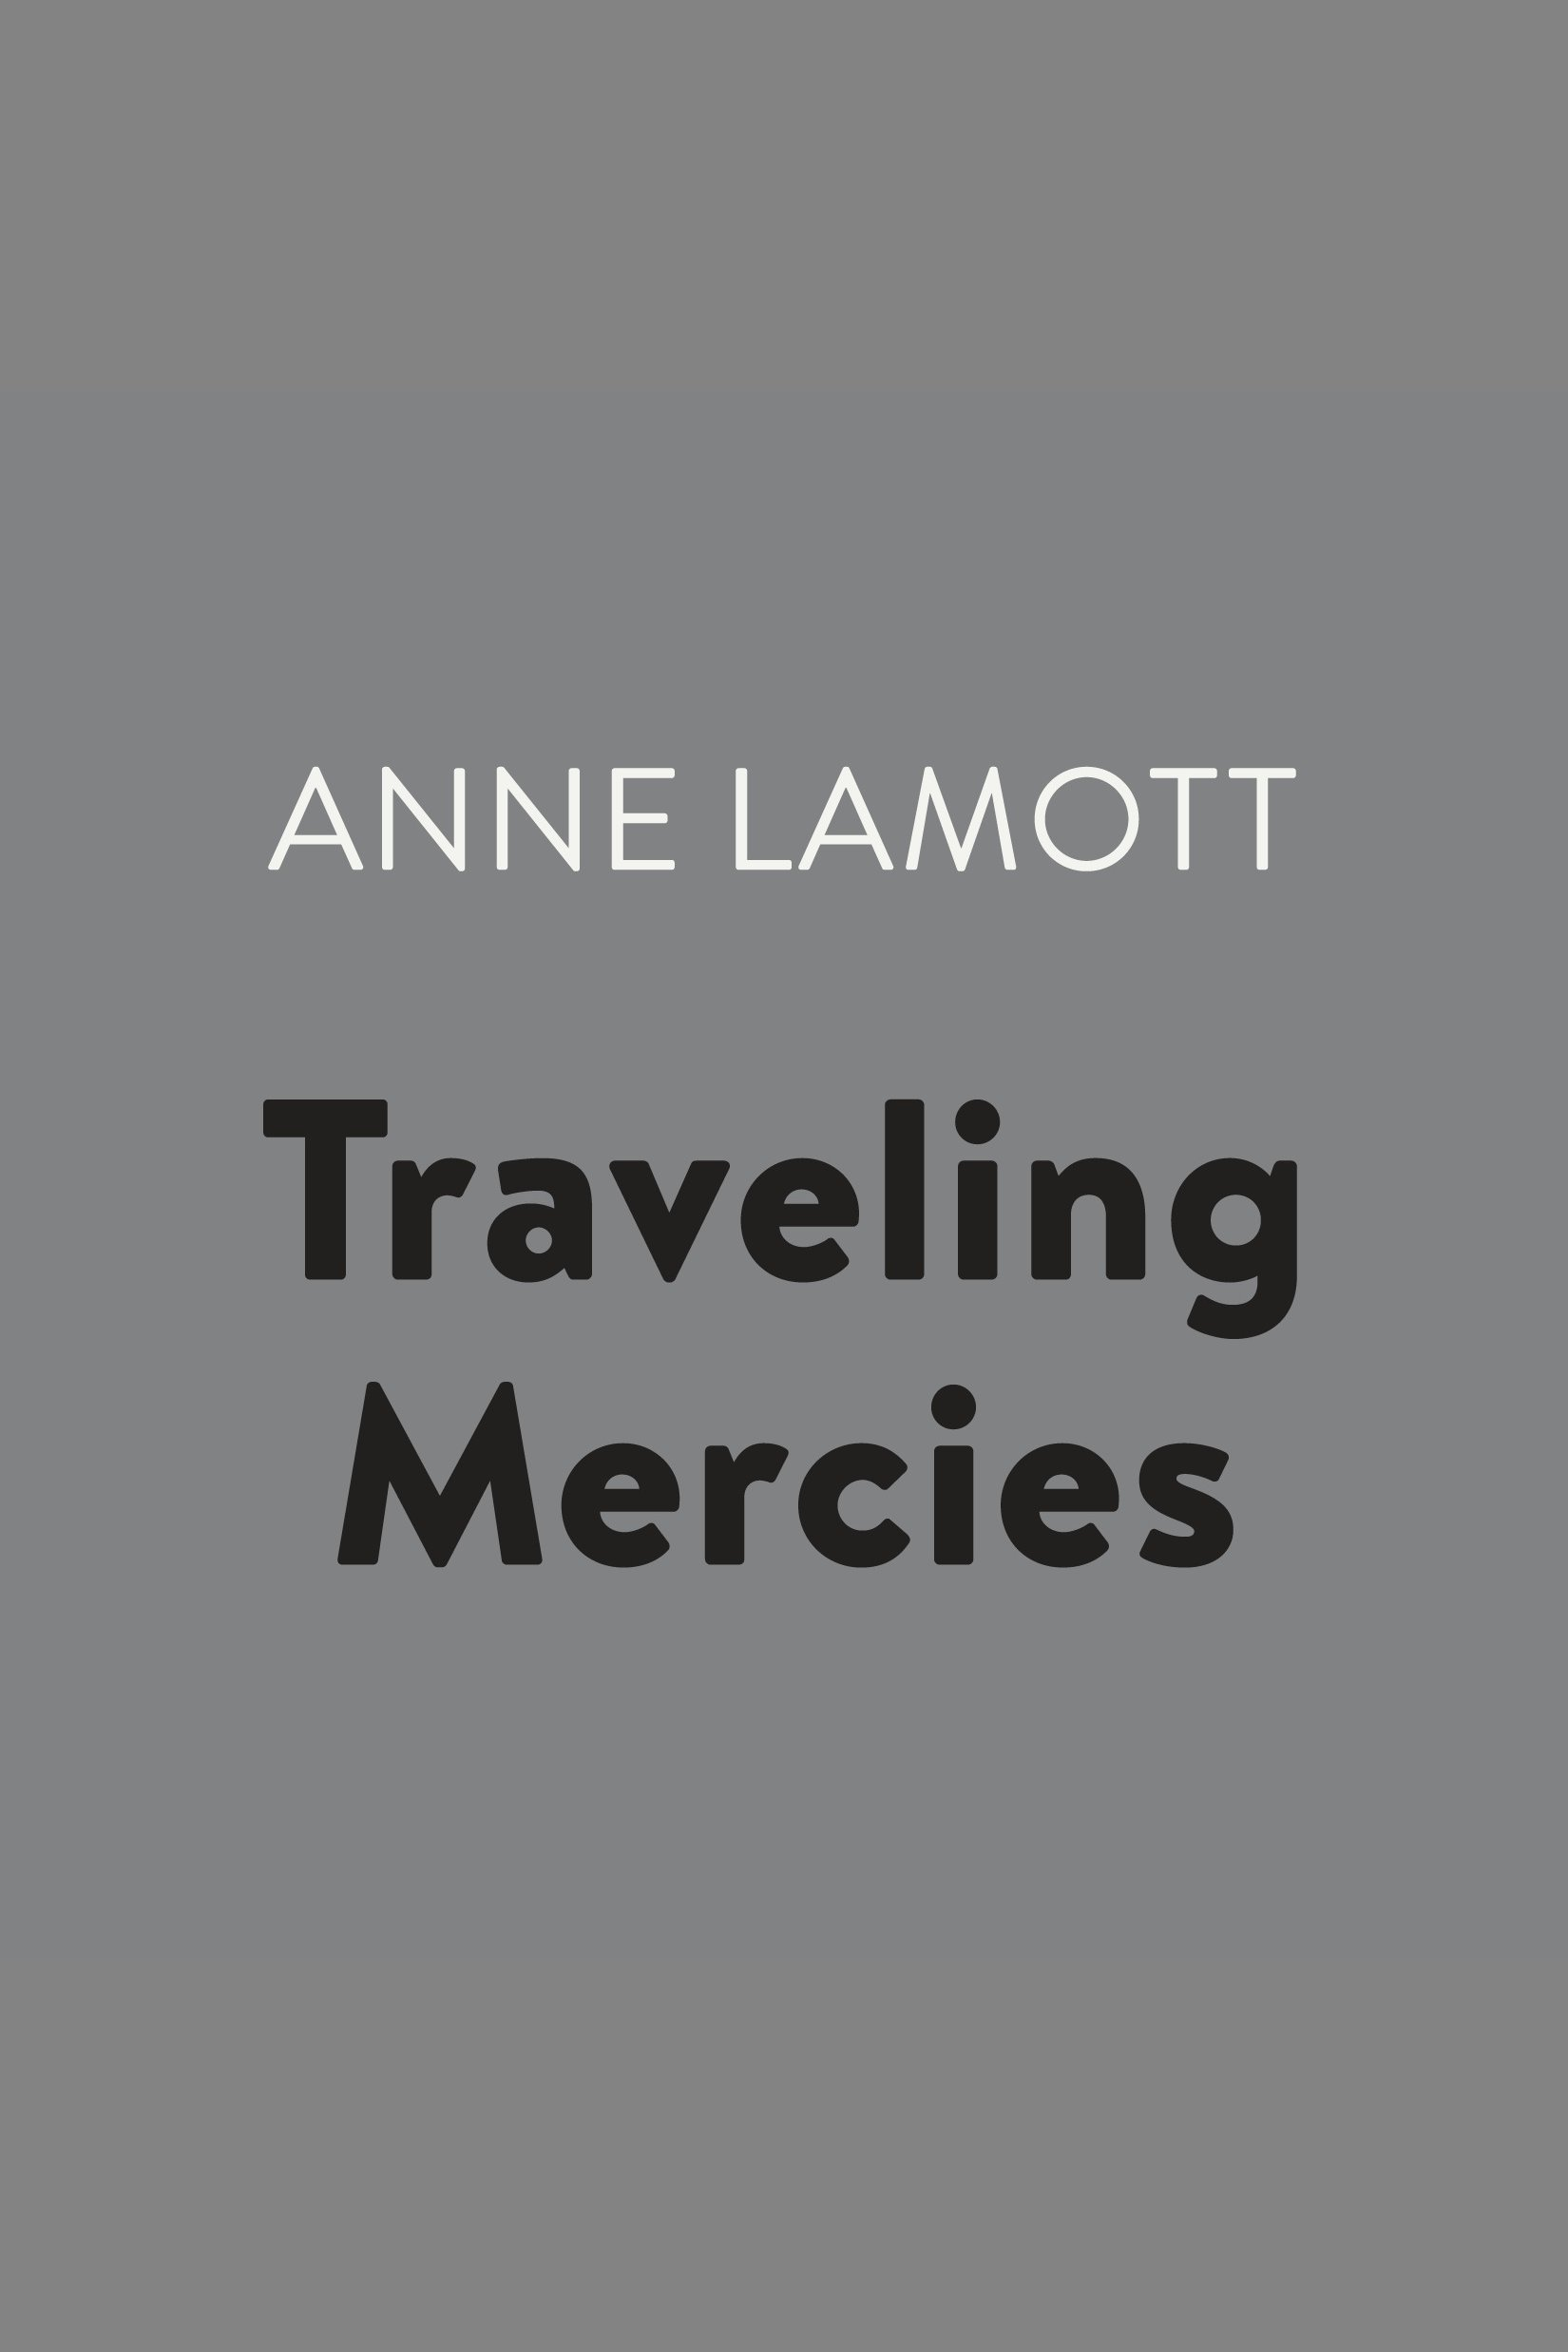 Traveling mercies some thoughts on faith cover image